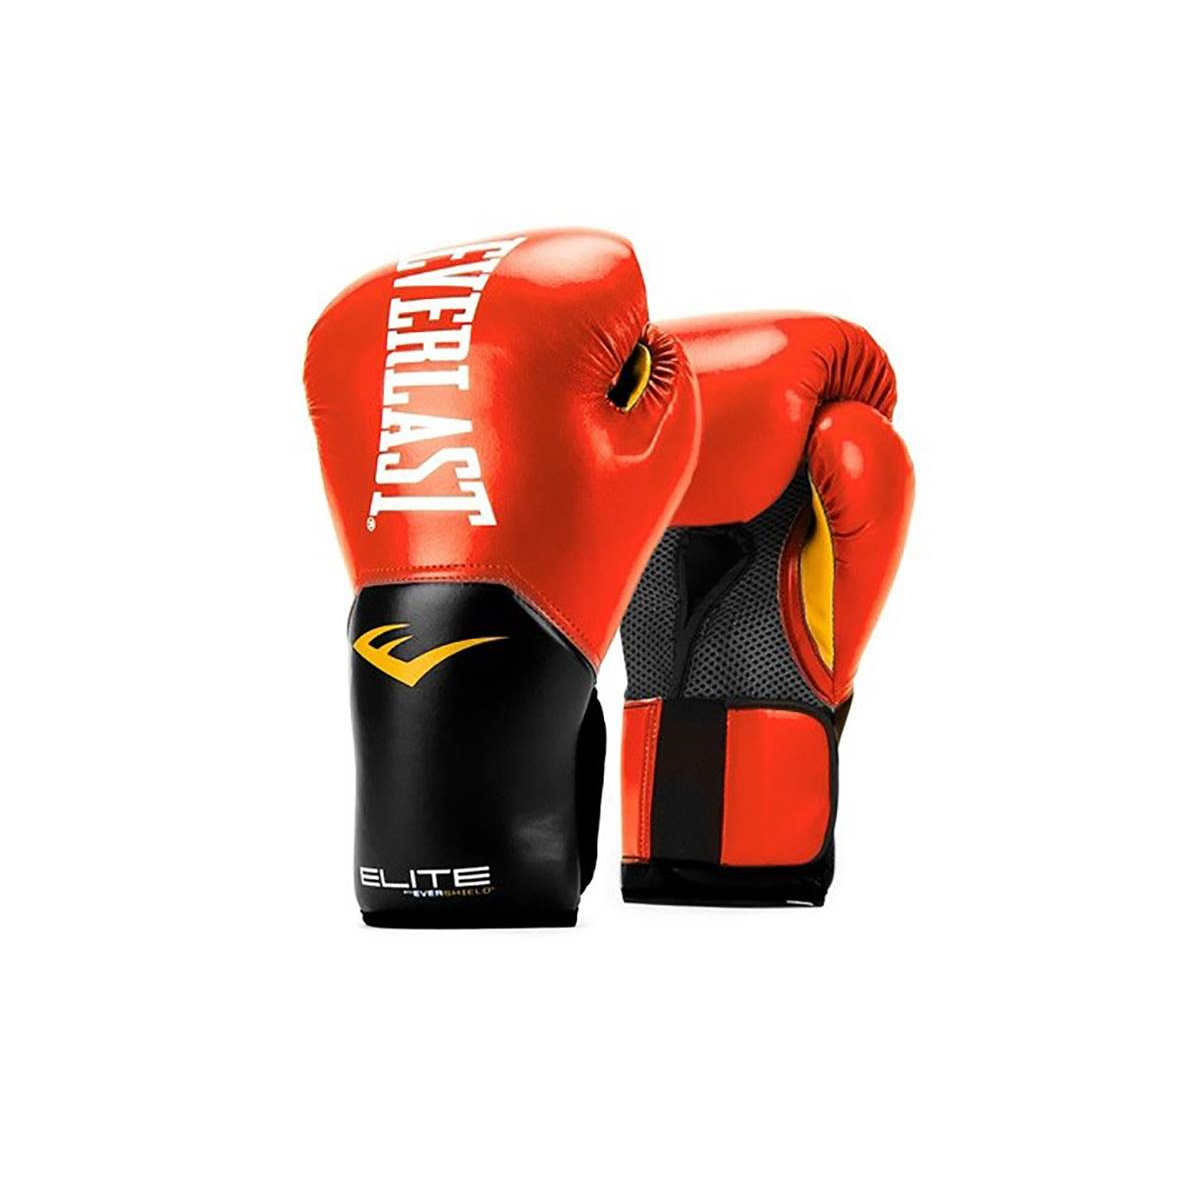 Pro-Style Elite Boxing Gloves, Red, swatch